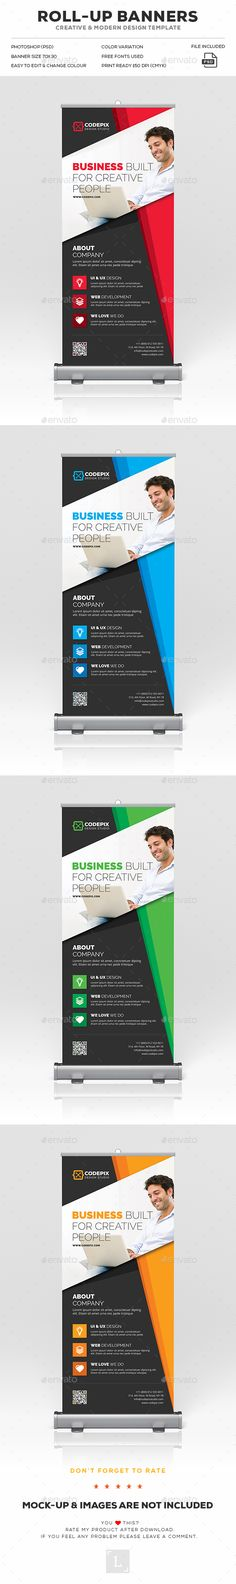 Corporate RollUp Banner — Photoshop PSD #simple #shoot • Available here → https://graphicriver.net/item/corporate-rollup-banner/18047059?ref=pxcr